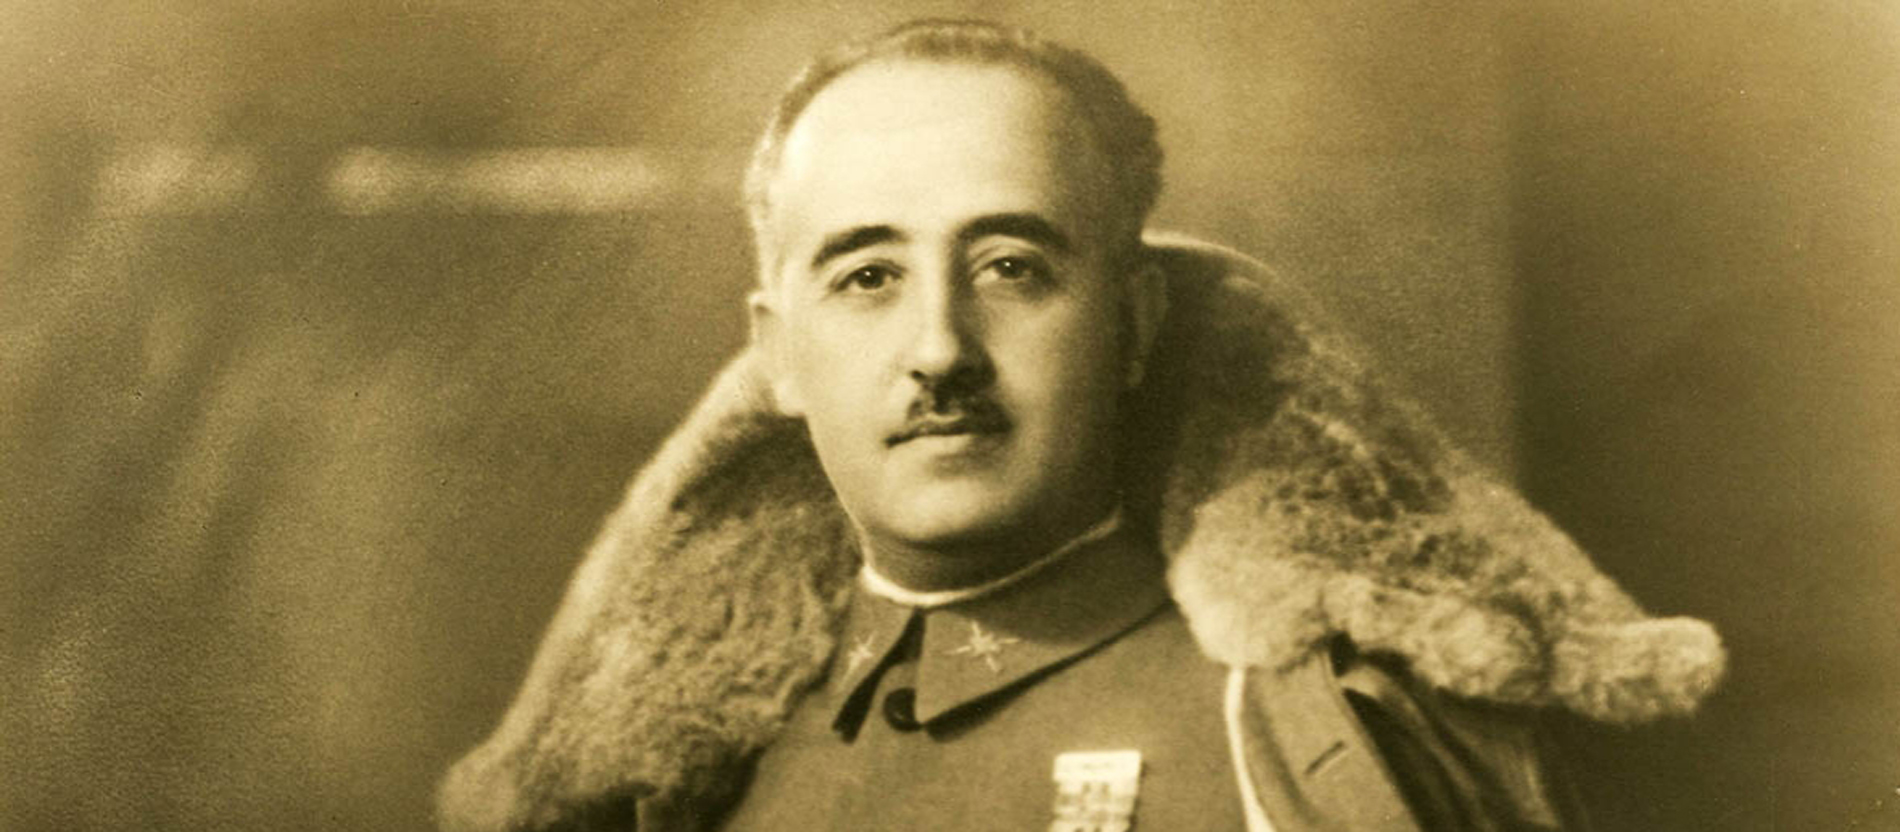 Ruht Franco bald in der Kathedrale von Madrid?